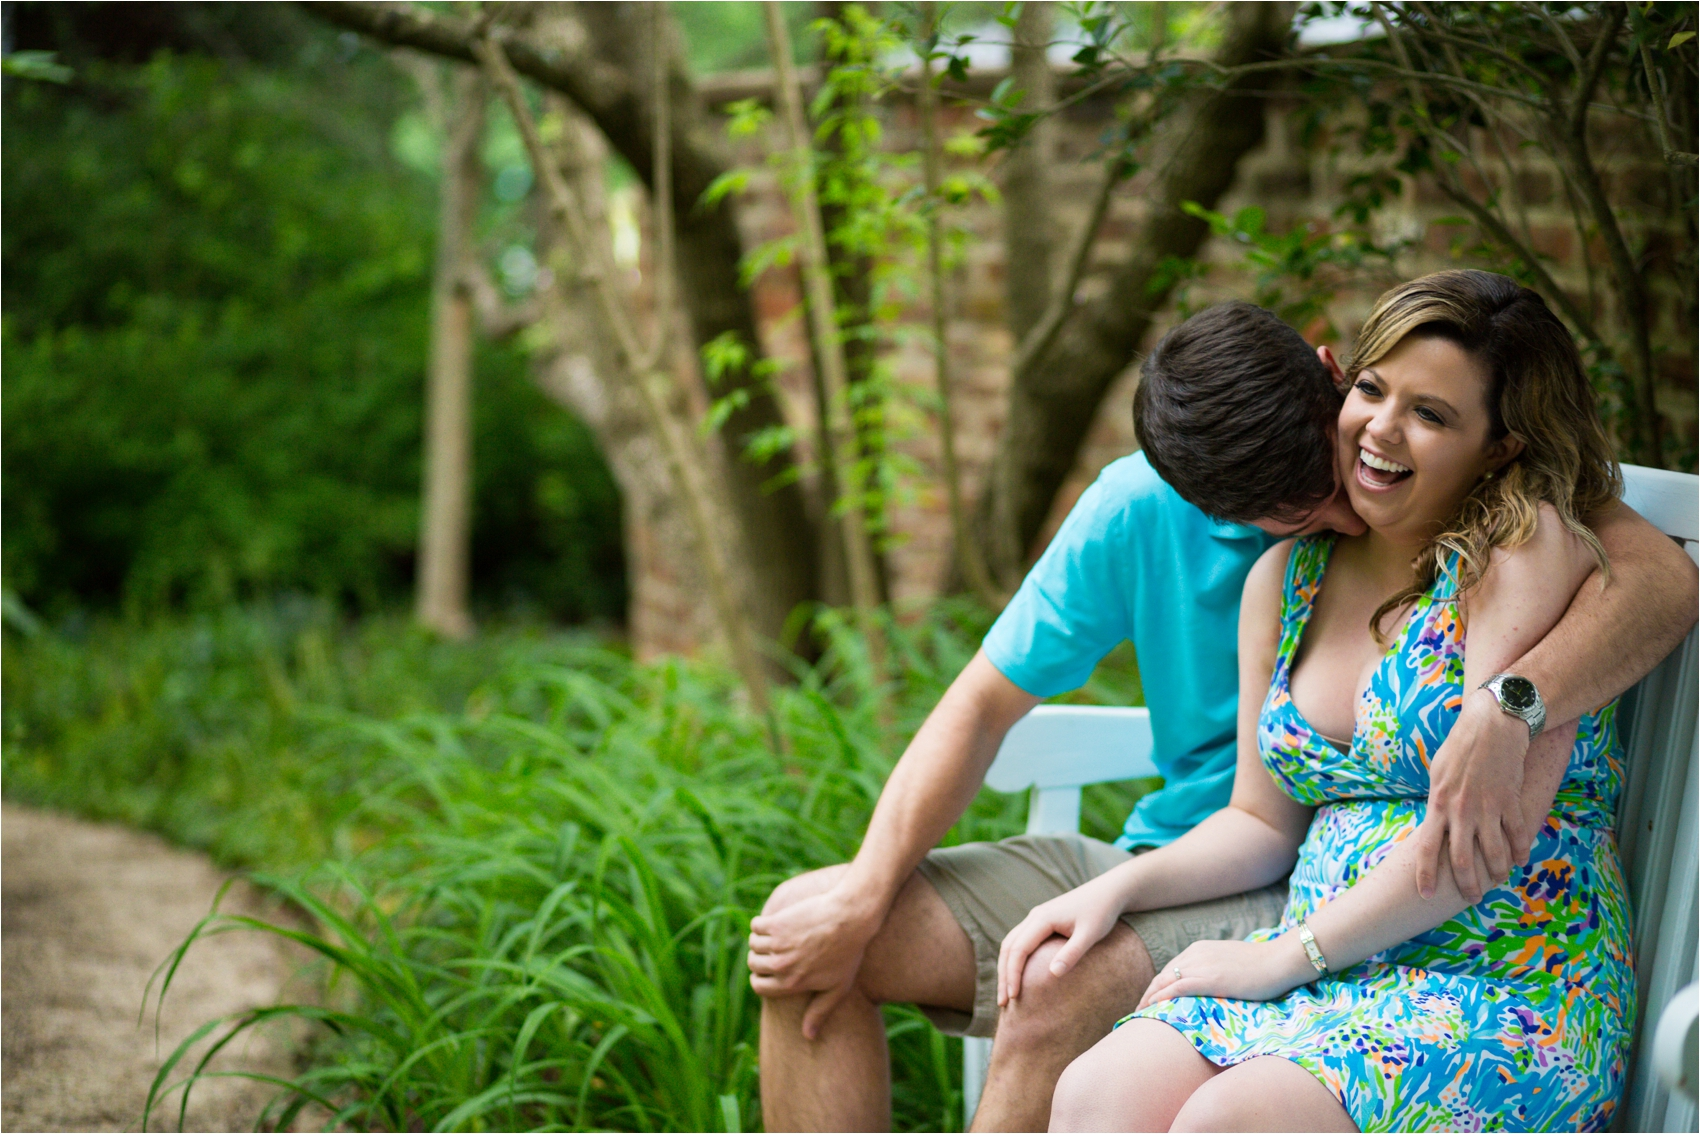 Charlottesville-Virginia-Spring-Engagement-Session-4896.jpg